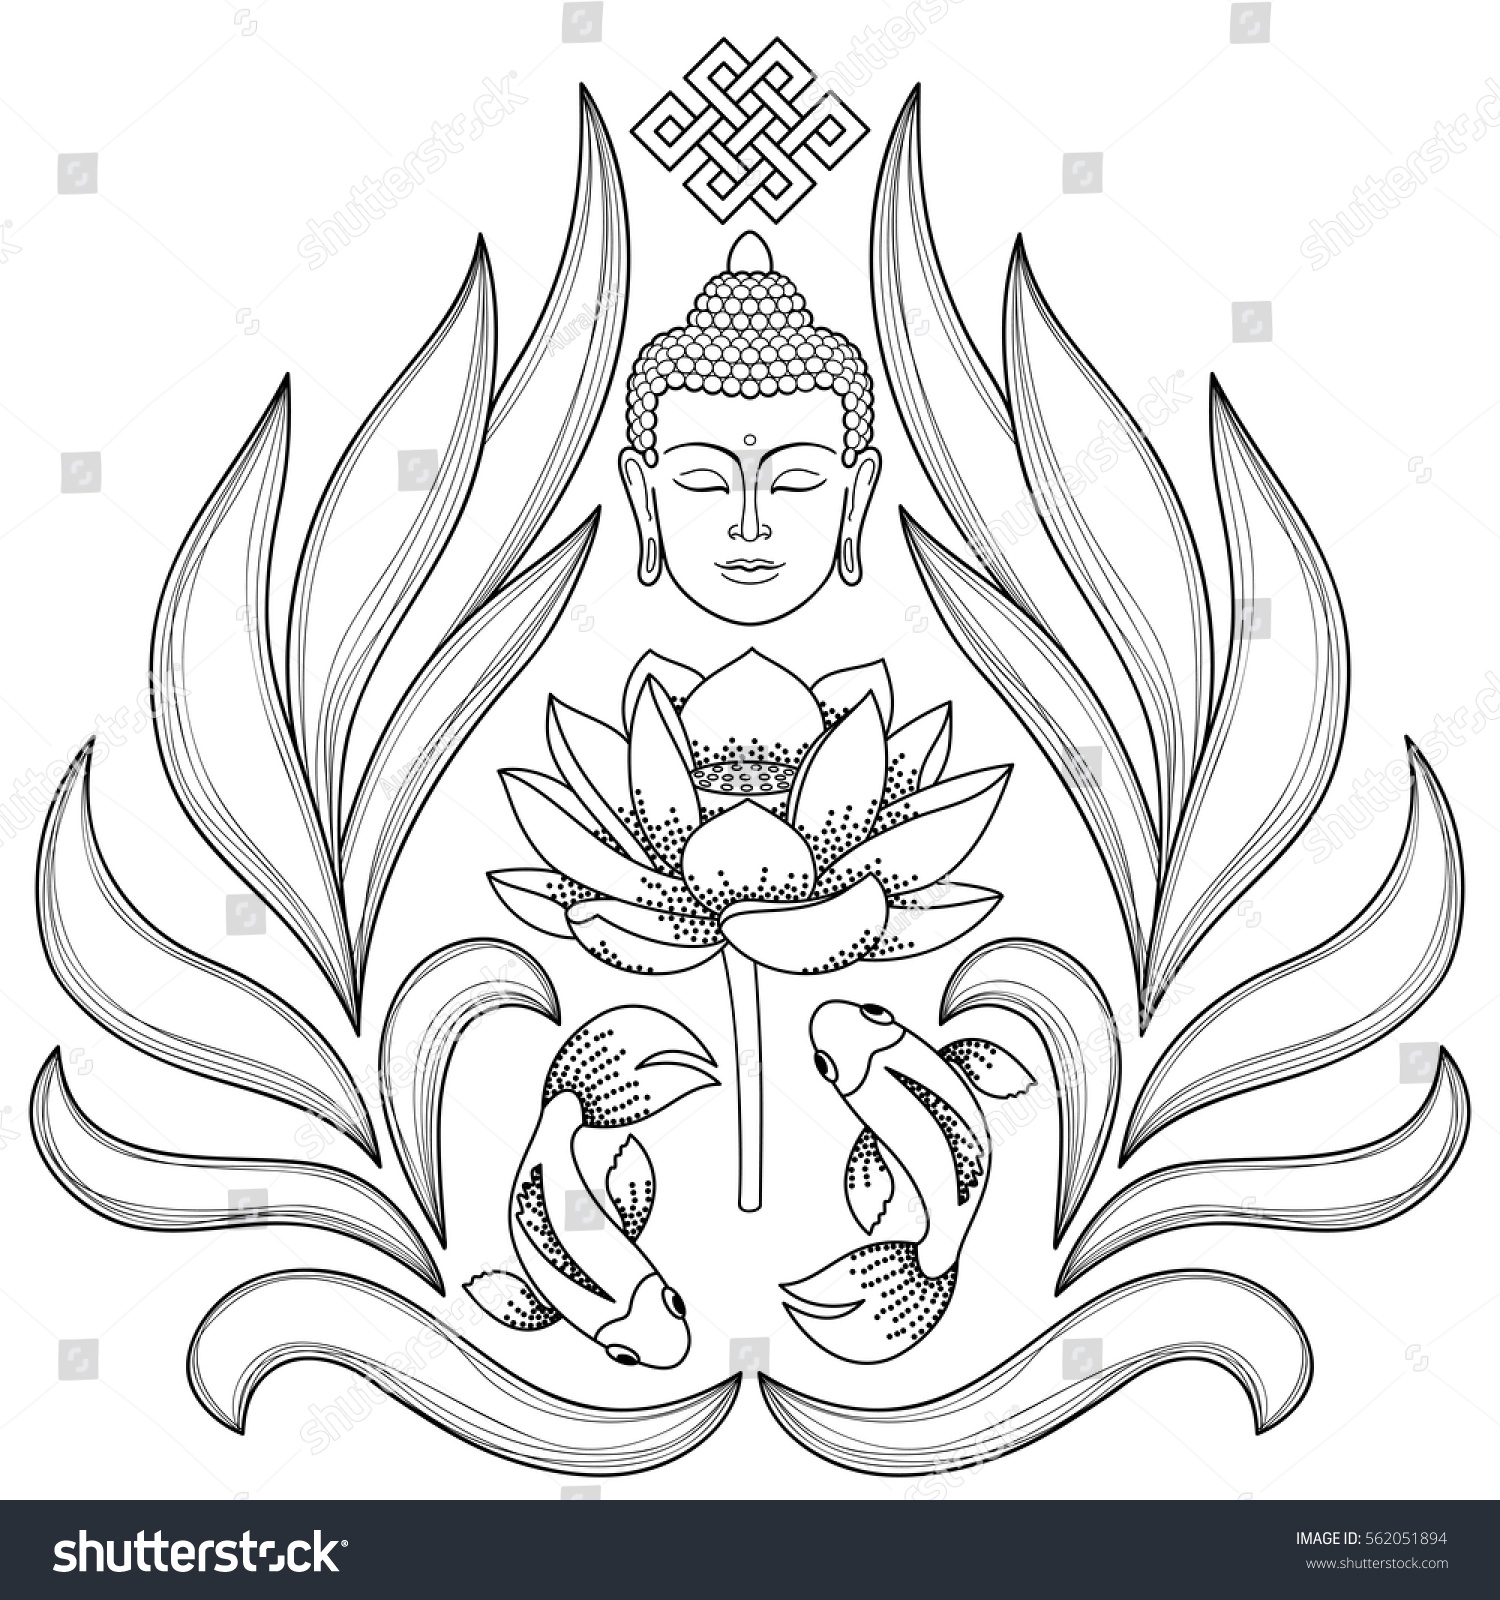 Royalty Free Buddha Head With Endless Knot Lotus 562051894 Stock